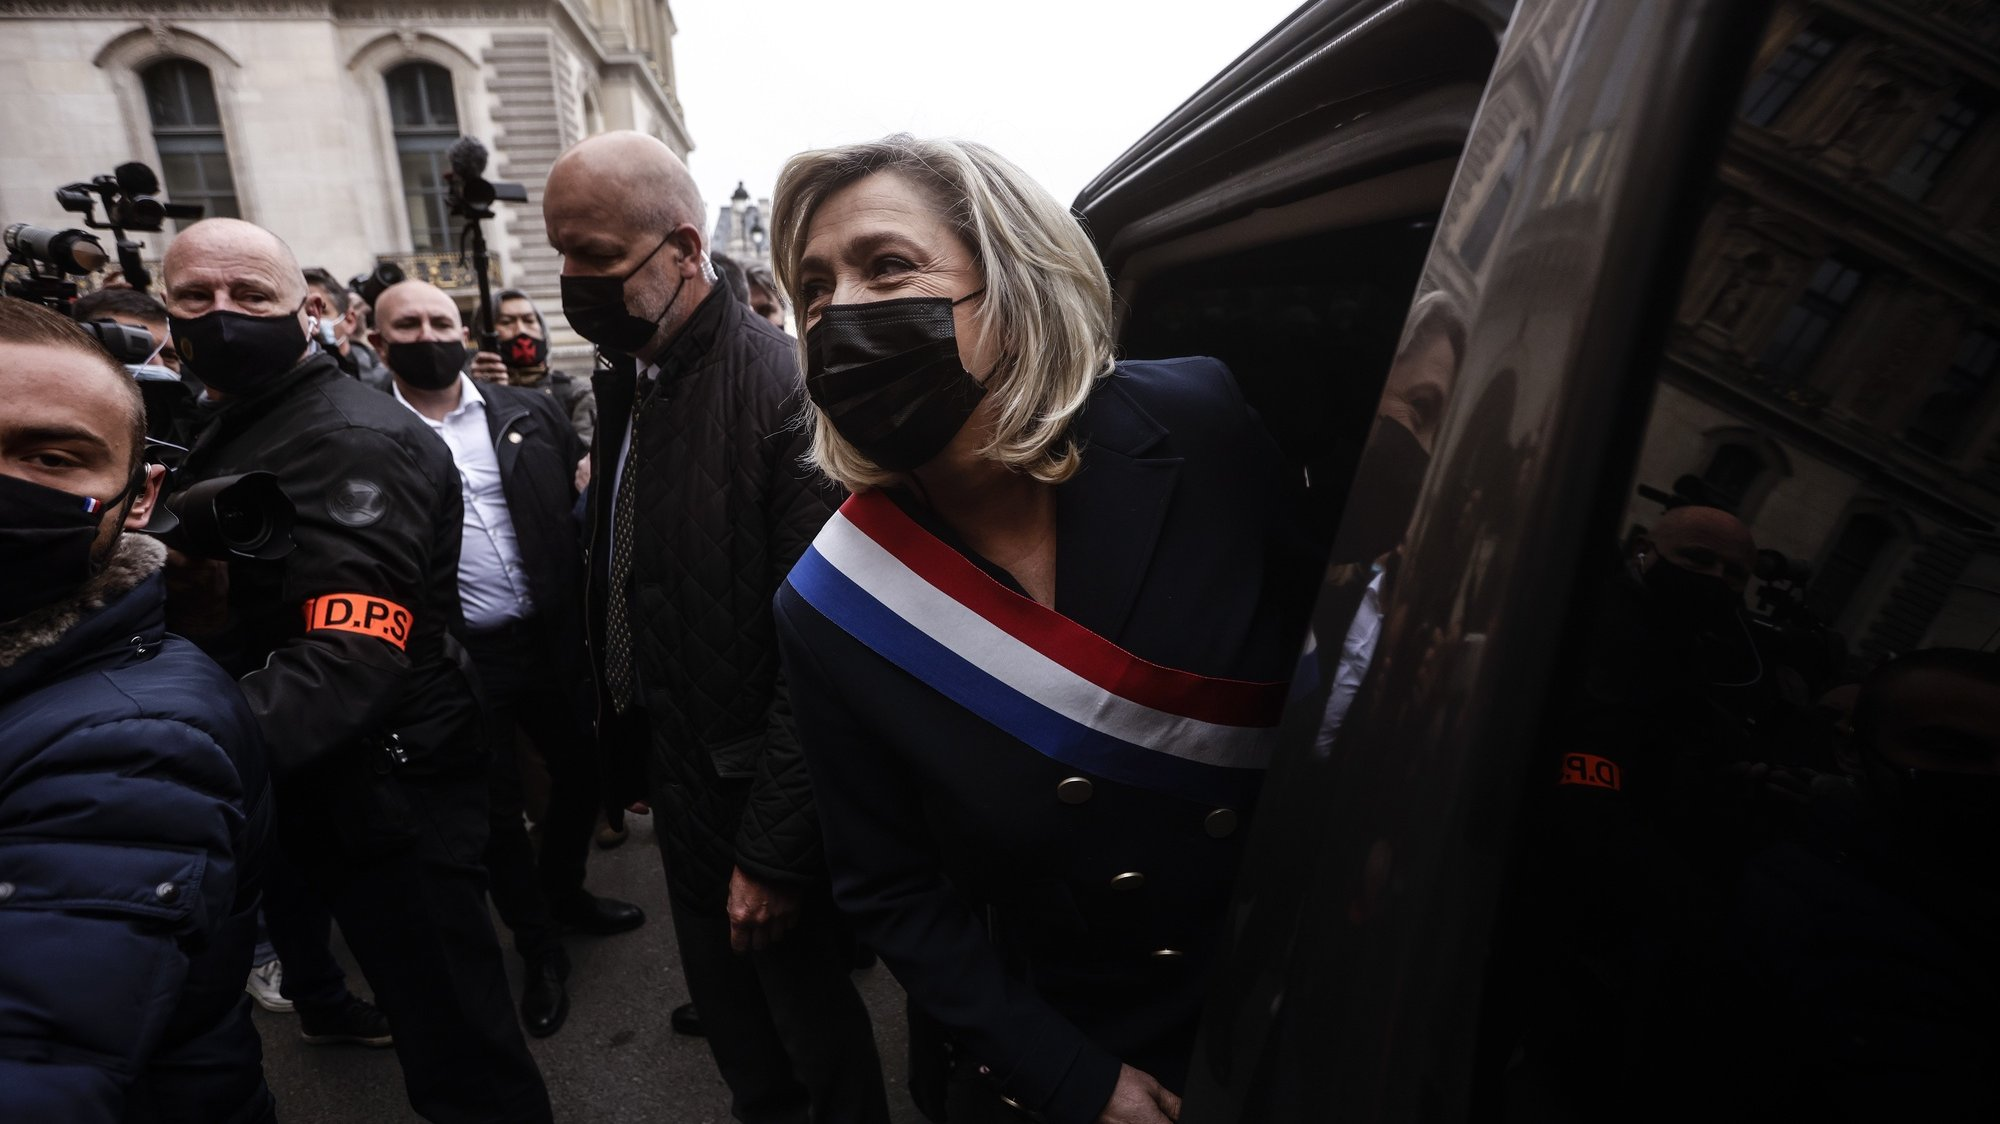 epa09170982 French far-right political party Rassemblement National (RN) leader Marine Le Pen (C) leaves by car after laying a wreath of flowers in front of the statue of Joan of Arc in Paris, France, 01 May 2021. The party's traditional rally for Labor Day will be held online due to containment measures taken in an attempt to stop the spread of the SARS-CoV-2 coronavirus.  EPA/YOAN VALAT